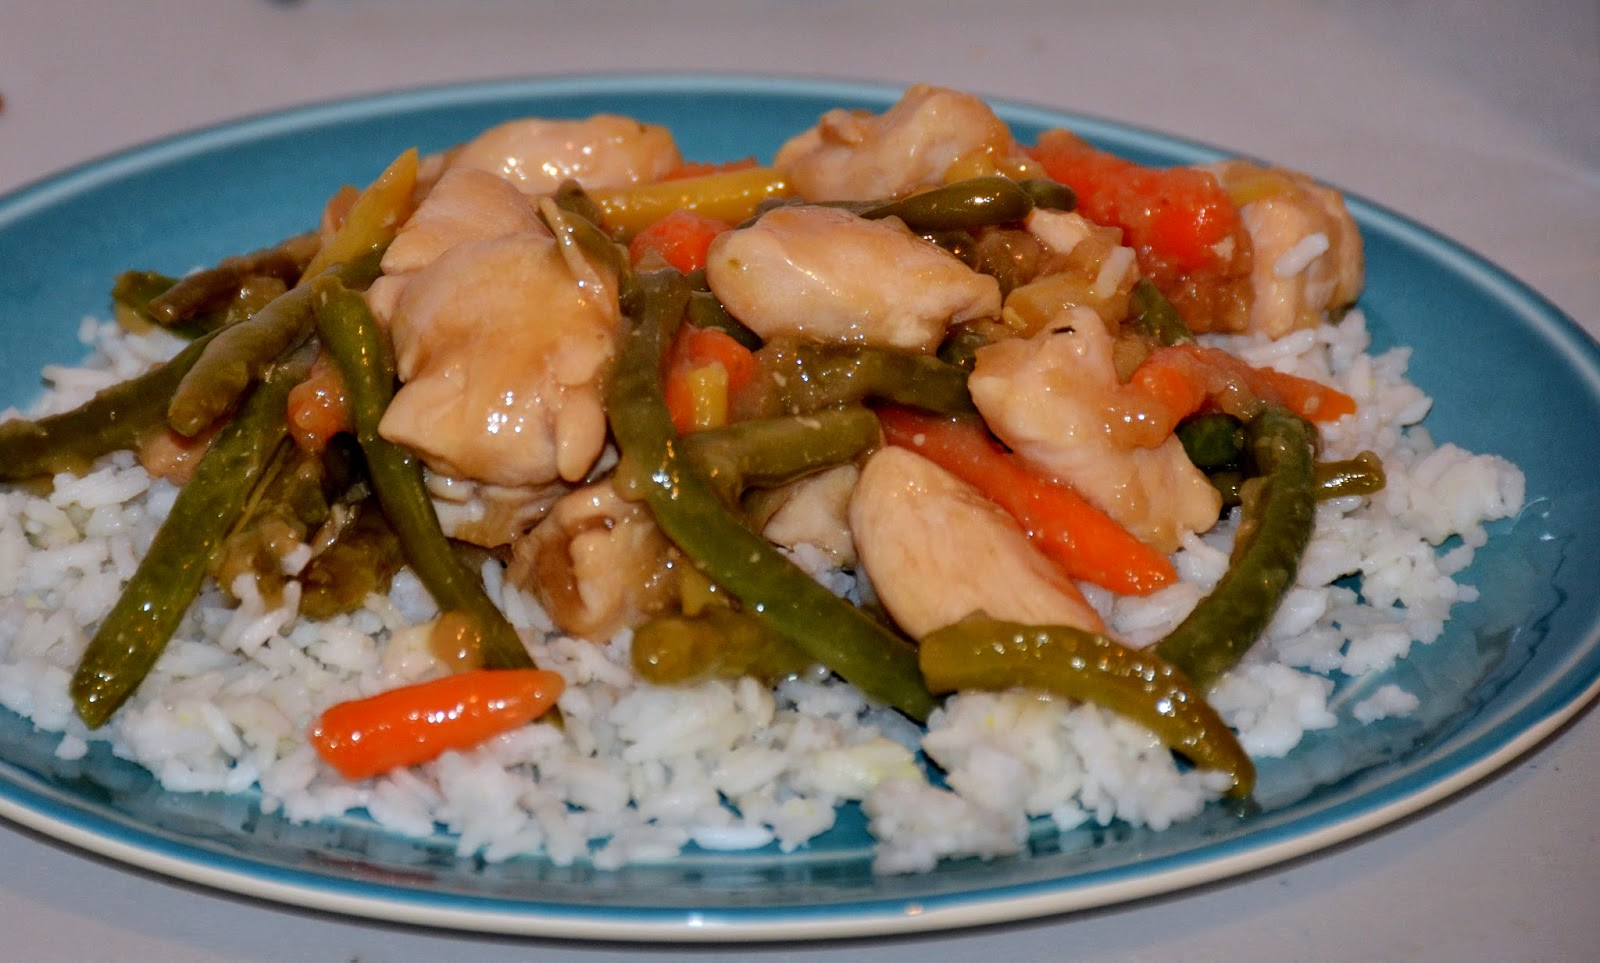 how to make stir fry chicken and vegetables